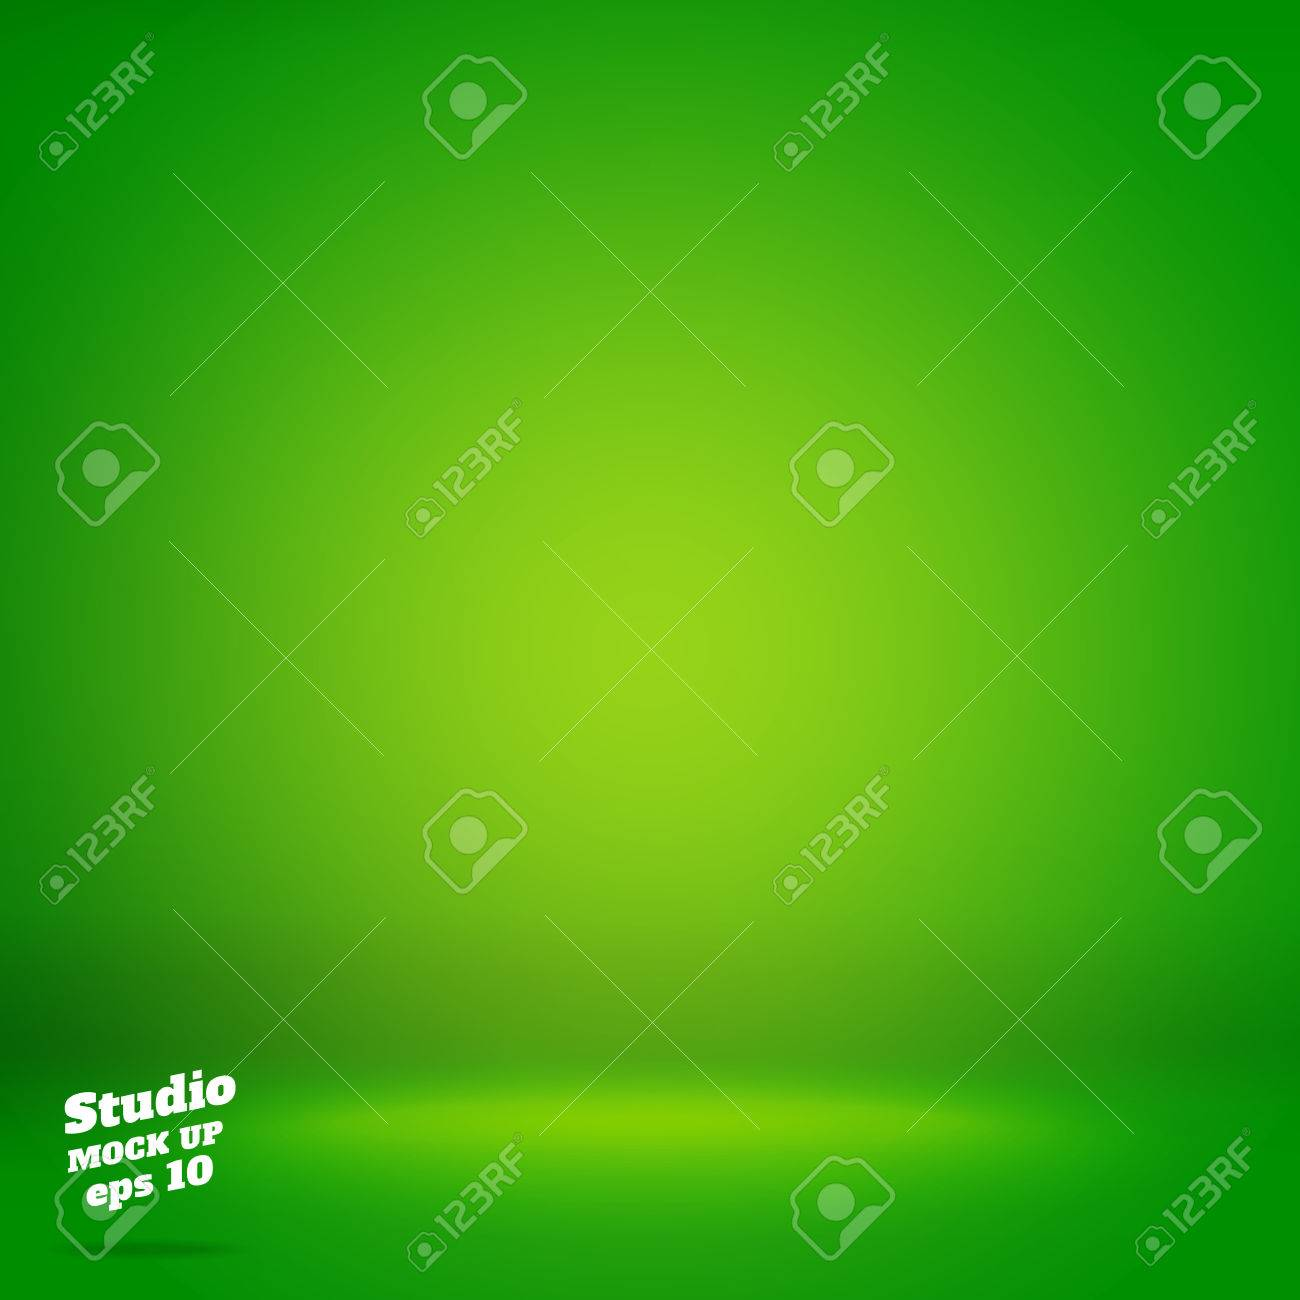 Vector,Empty vivid lighting green studio room background ,Template mock up for display or montage of product,Business backdrop. - 59621430